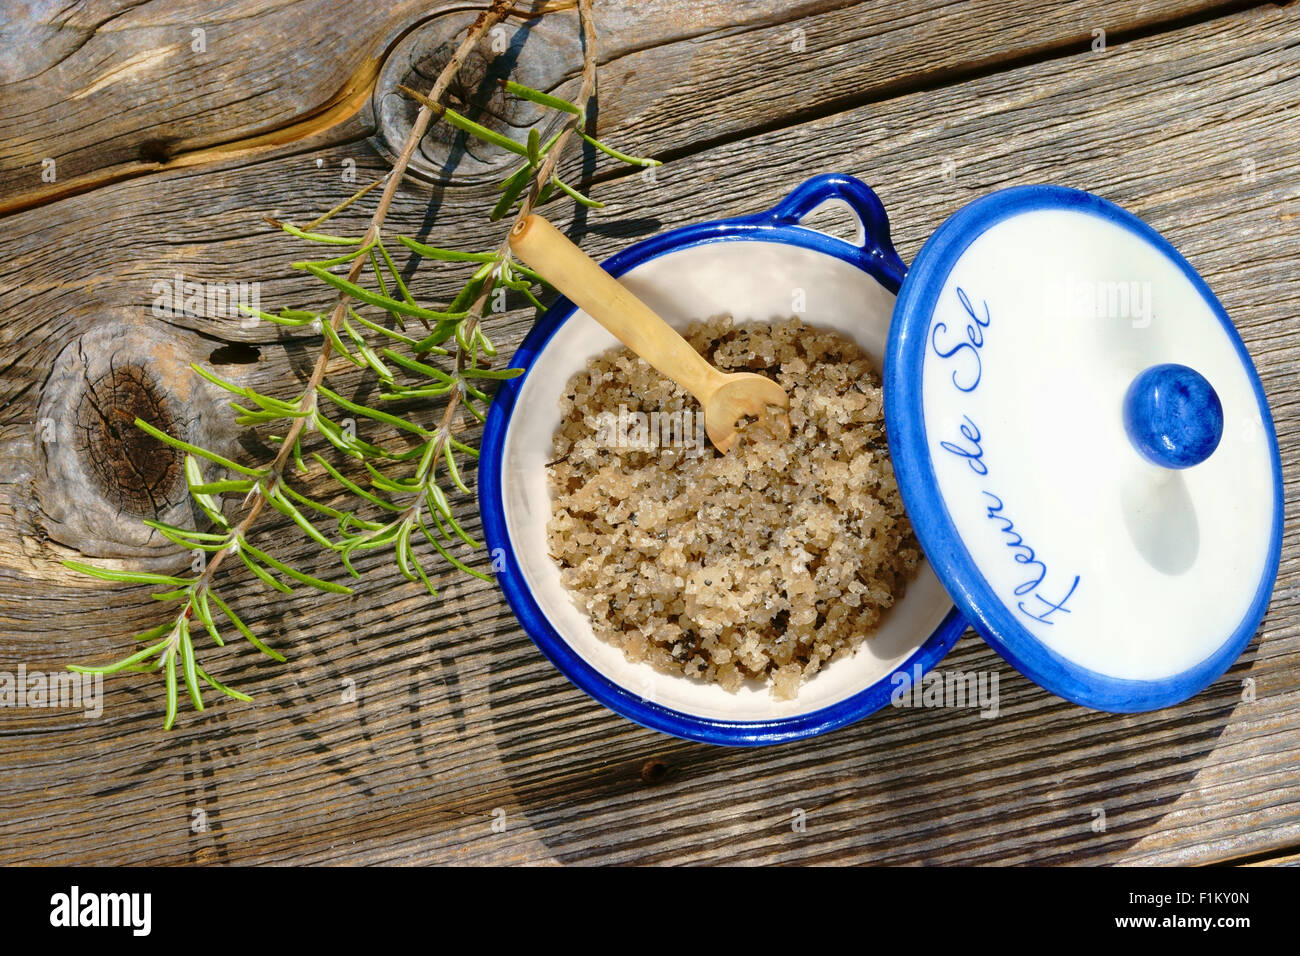 Small porcelain dish with fleur de sel and a rosemary twig on a rustic wooden table - Stock Image